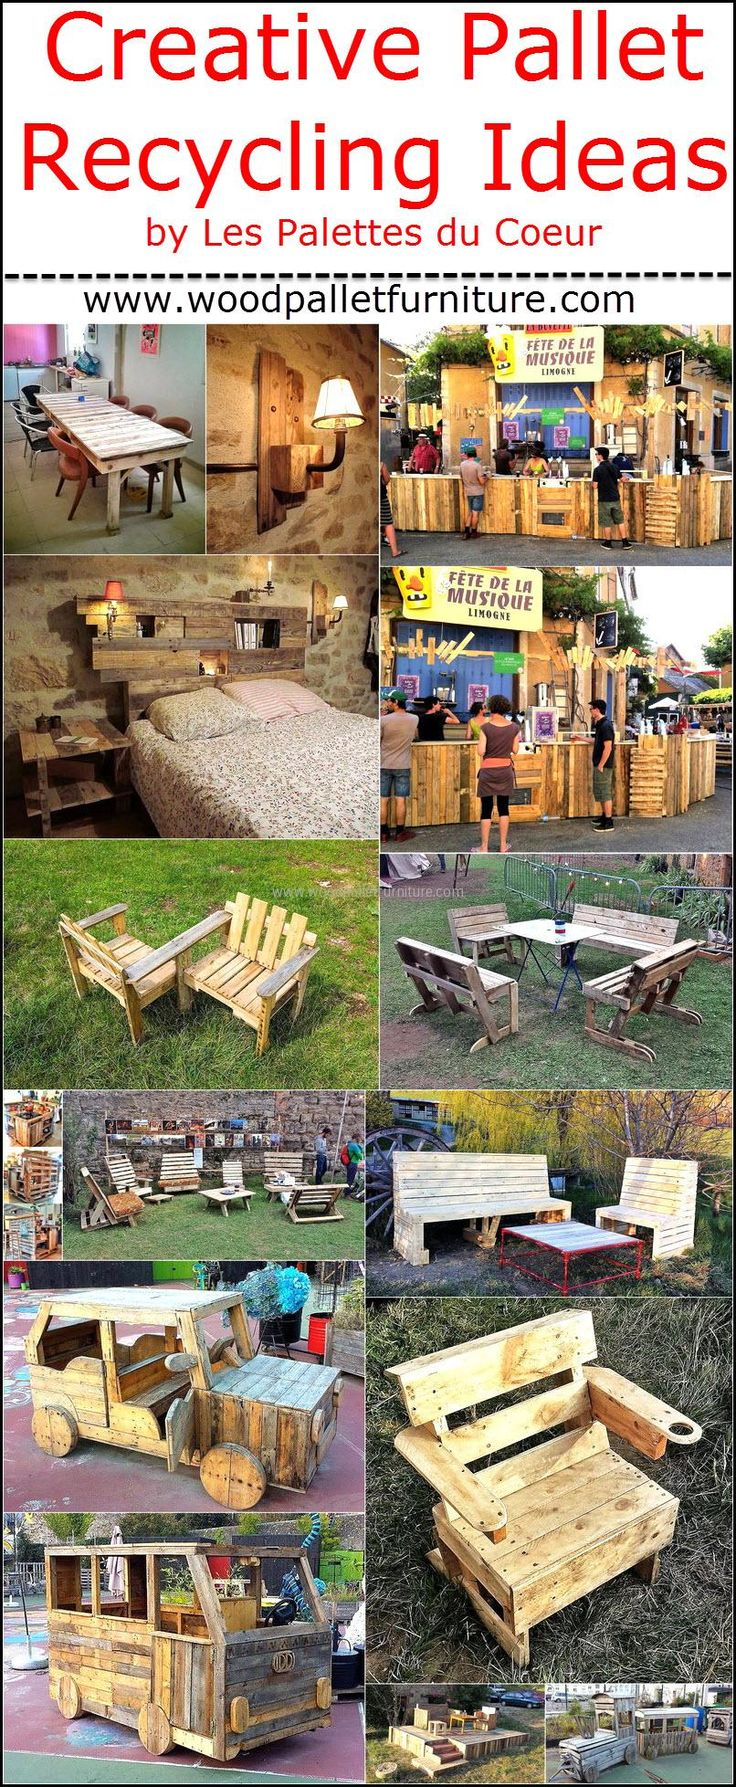 We are here to assist those who are looking for unique ideas to create the products for the home decoration and we have a collection of items made by Les Palettes du Coeur. Wood pallets are useful in creating small as well as huge items; just the idea should be innovative to grab the attention of others.